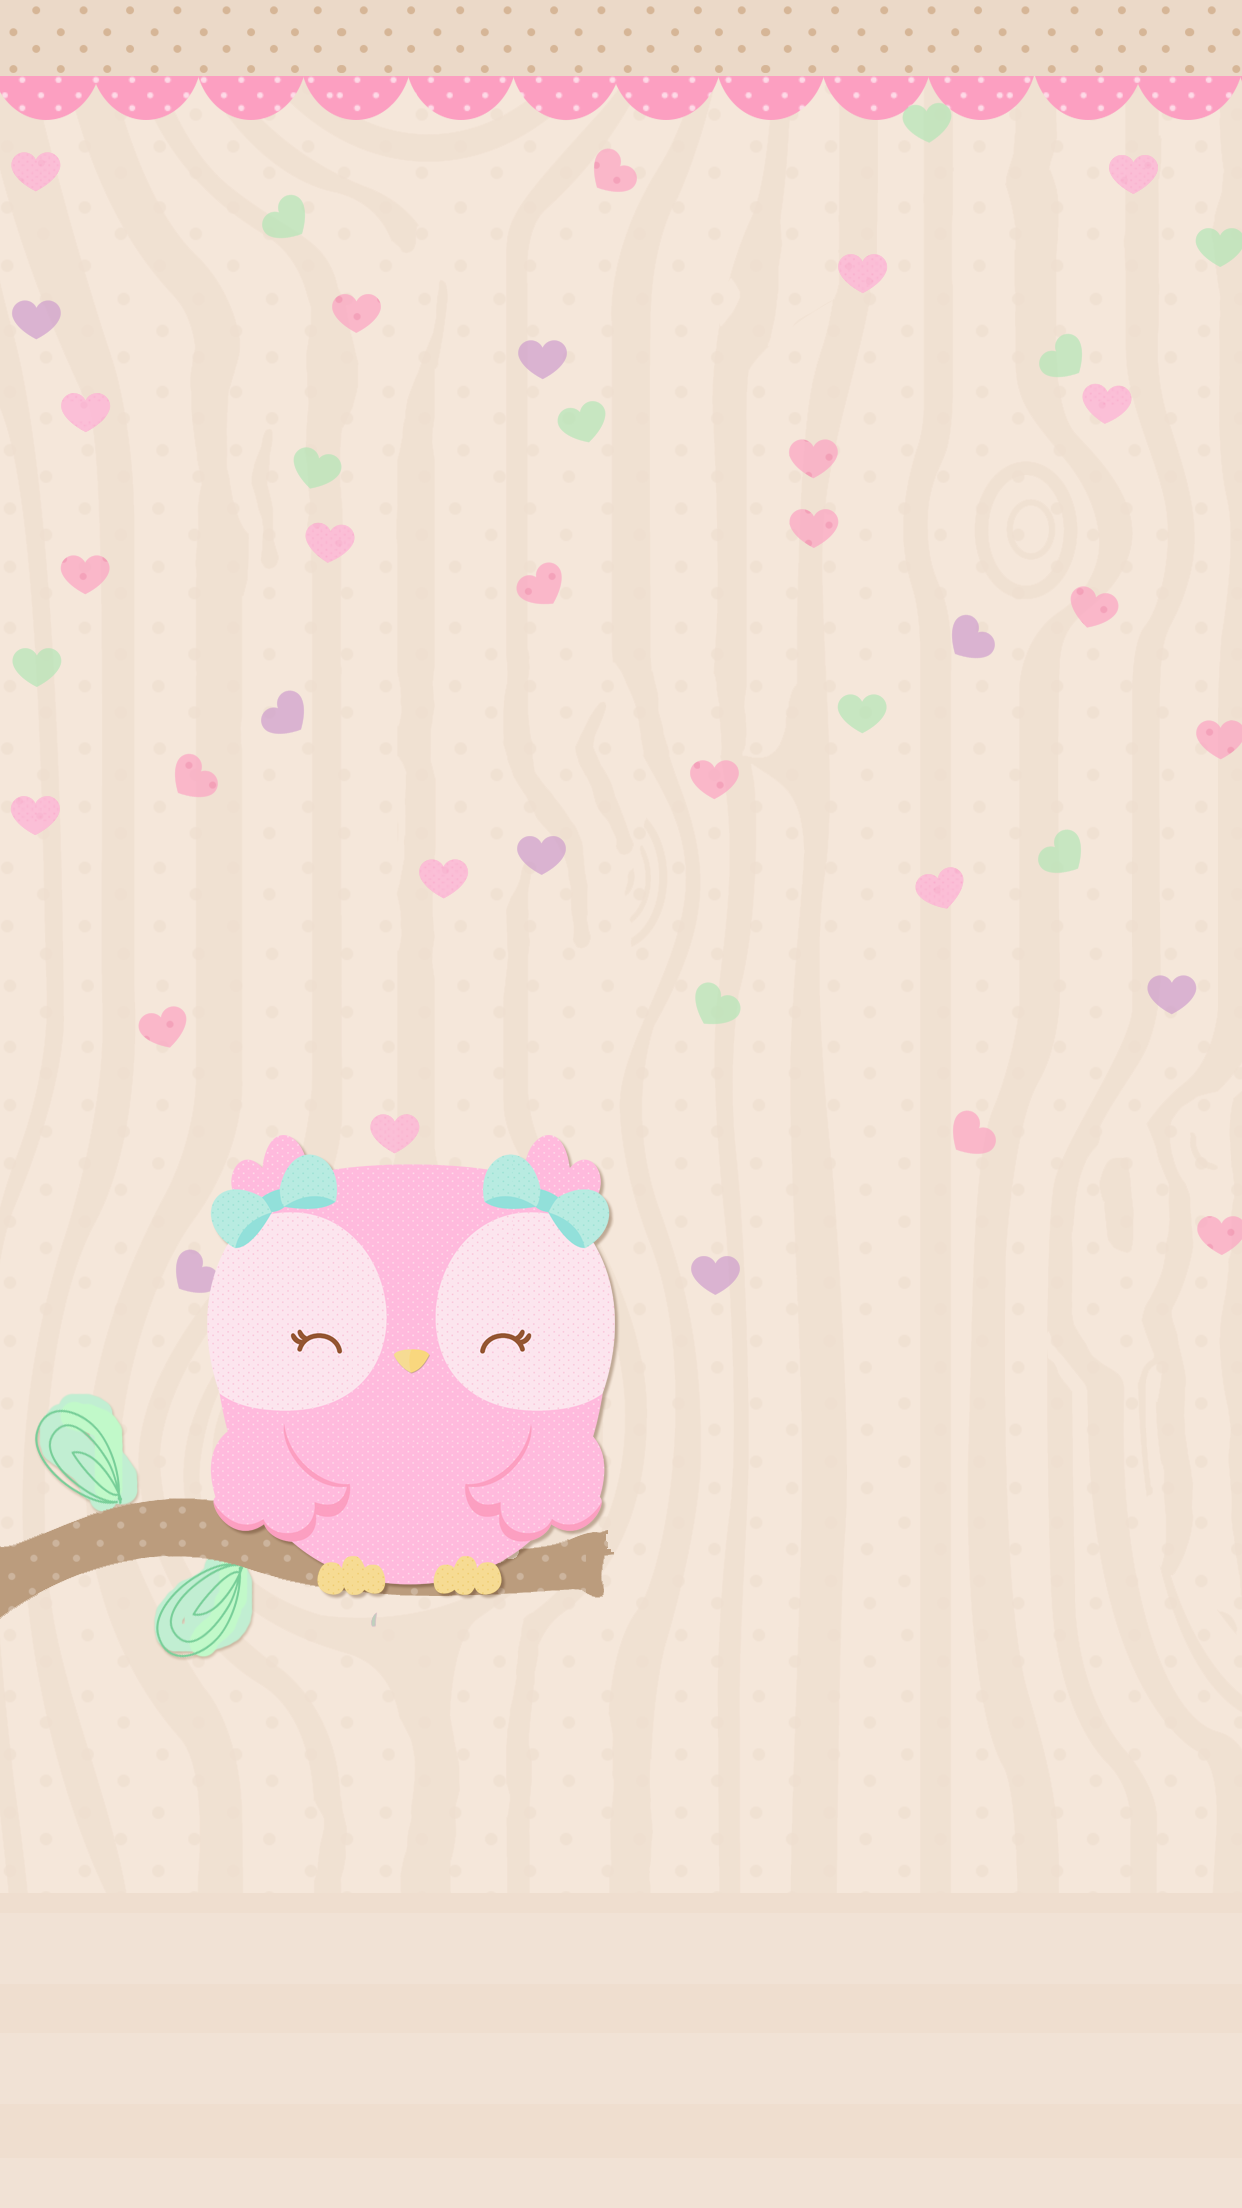 Cool Wallpaper Hello Kitty Pastel - 56b39dab3dc2c2b6437d9001c1a1ba53  Pictures_475858.png